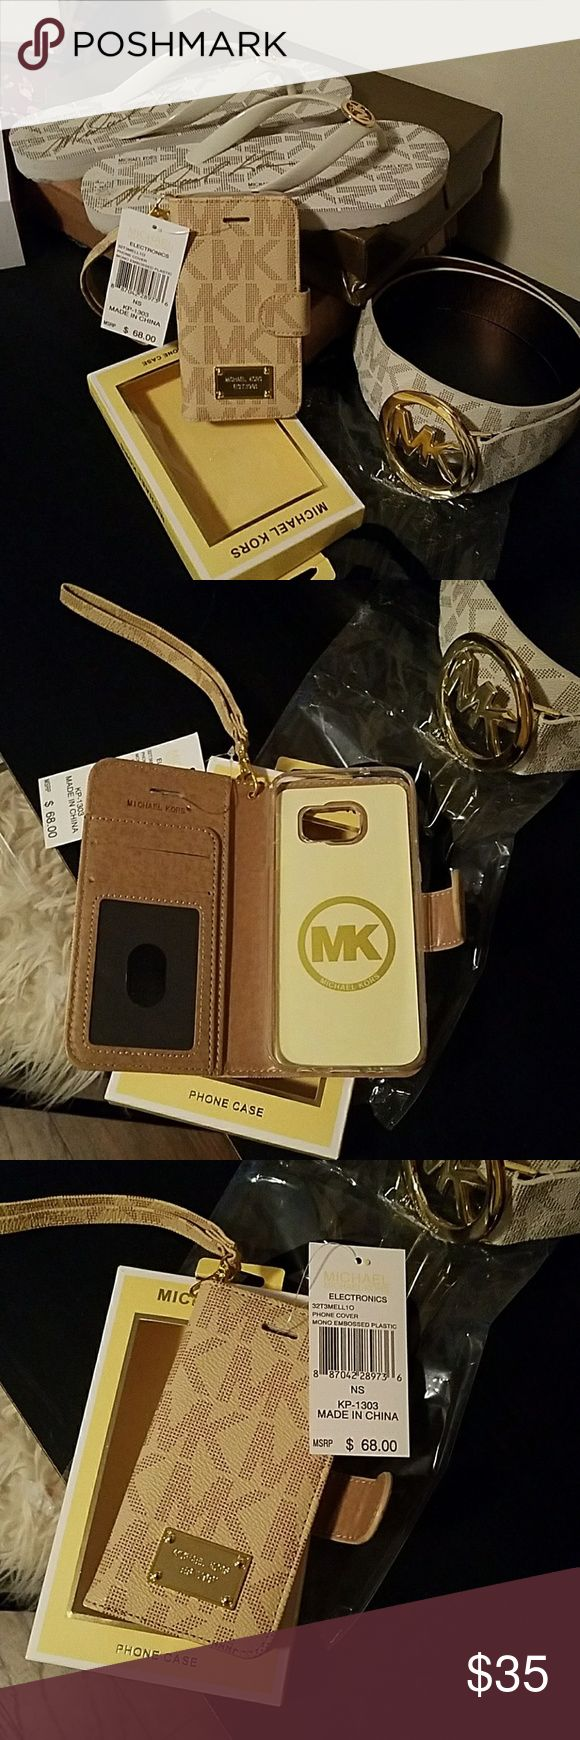 Brand new Michael Kors galaxy 7 phone case Brand new with tags never used. I just purchased this but isnt quite the color i was looking for. Maybe someone can get more use out of it then me 🛍☏📬 Michael Kors Accessories Phone Cases